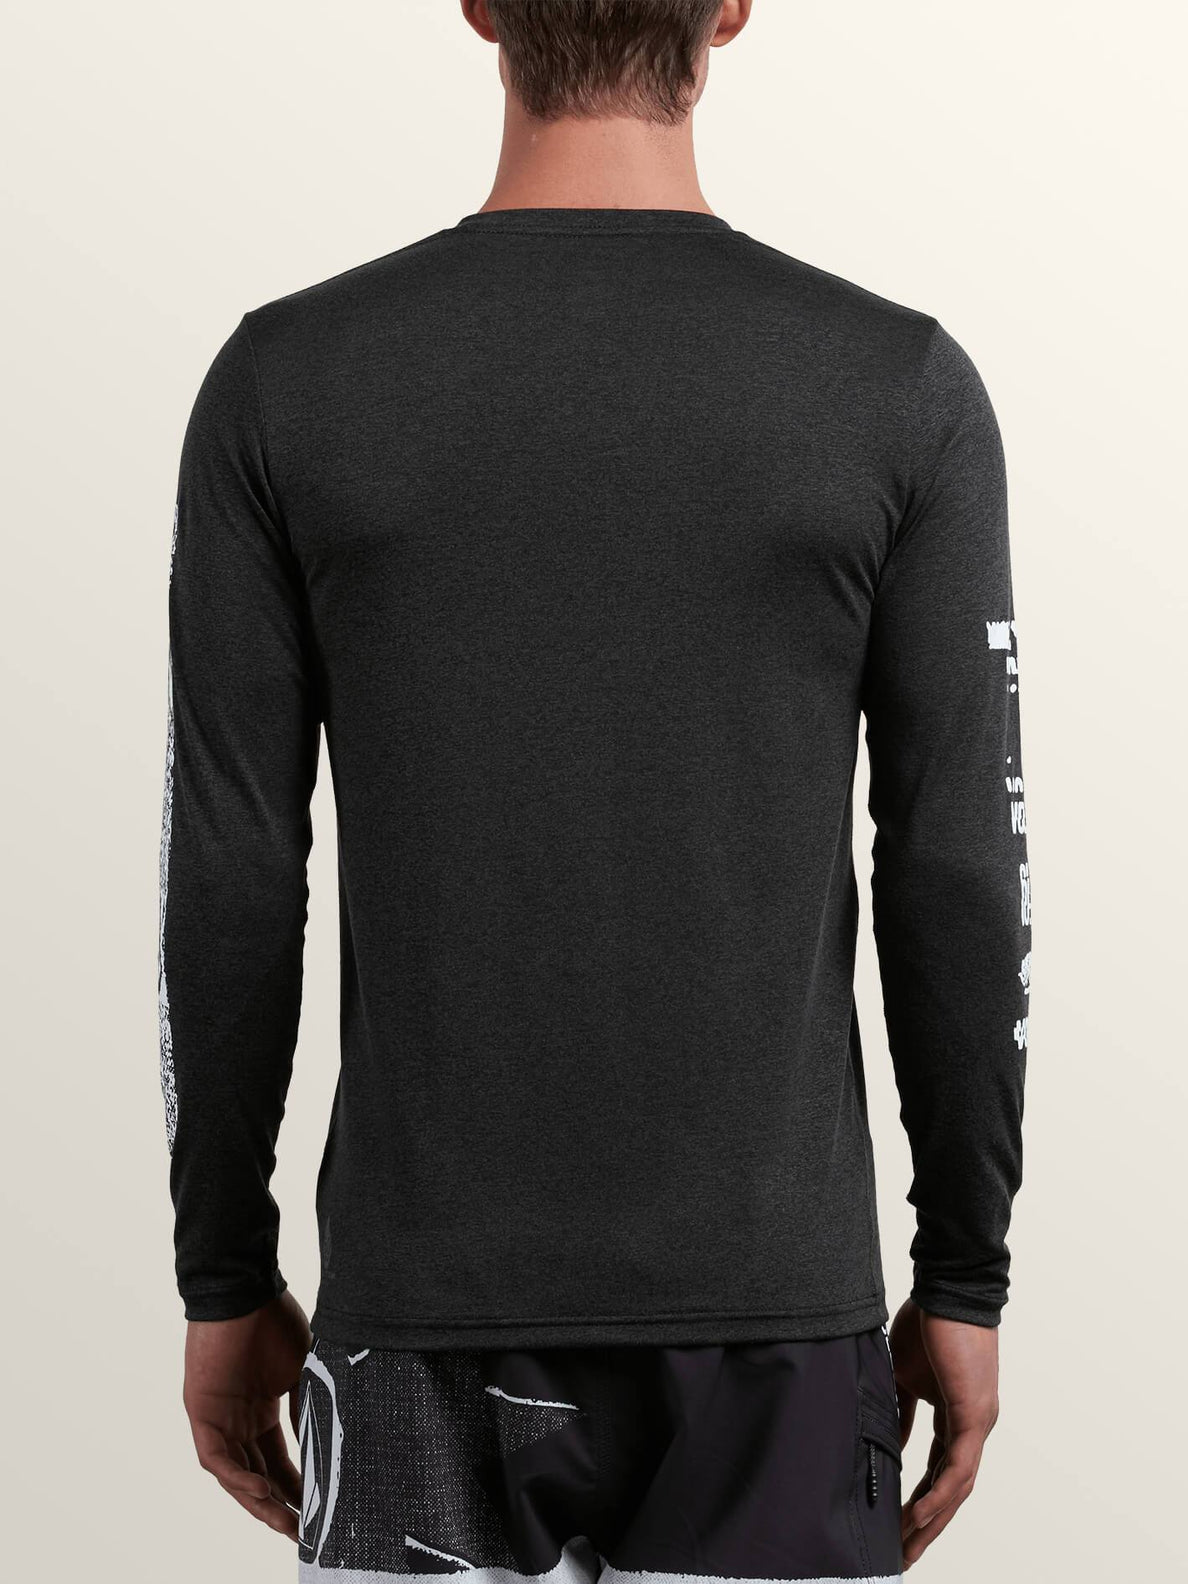 Lido Pixel Heather Long Sleeve Rashguard In Charcoal Heather, Back View